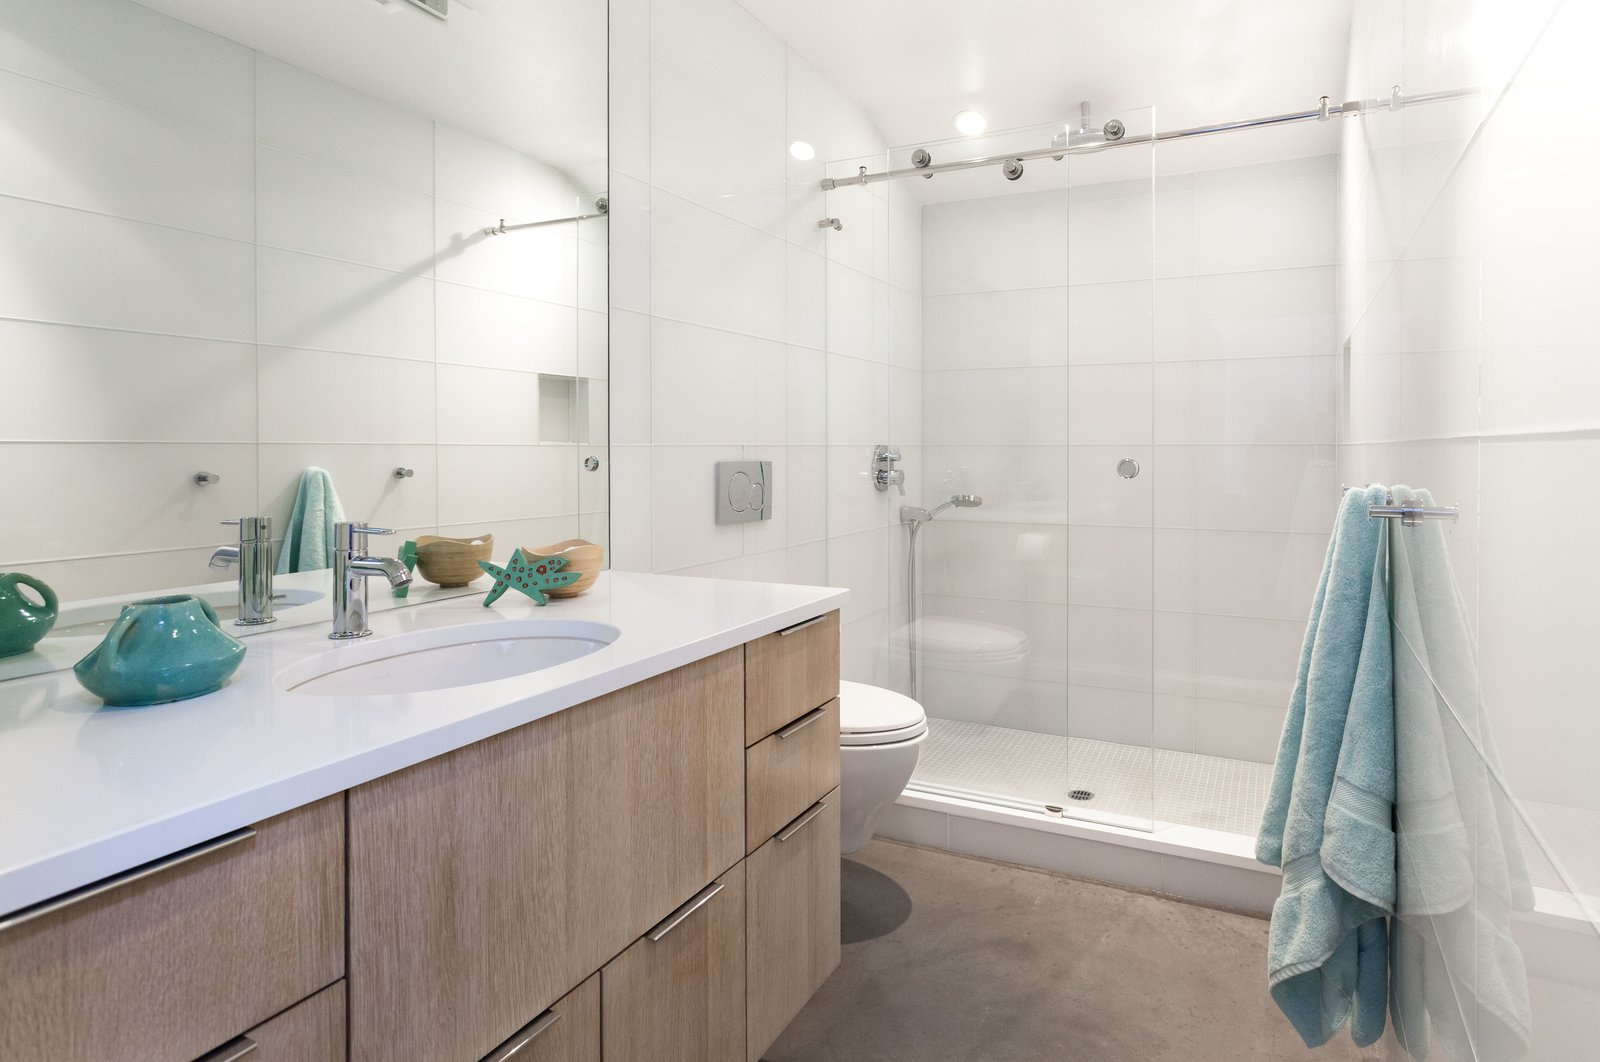 The bathroom was completely remodeled and features large glass tiles that read as one single surface material. The floors are made up of unfinished poured concrete.  Photo 7 of 10 in Bright Colors and Sleek White Oak Fill This Playful Lake Tahoe Loft